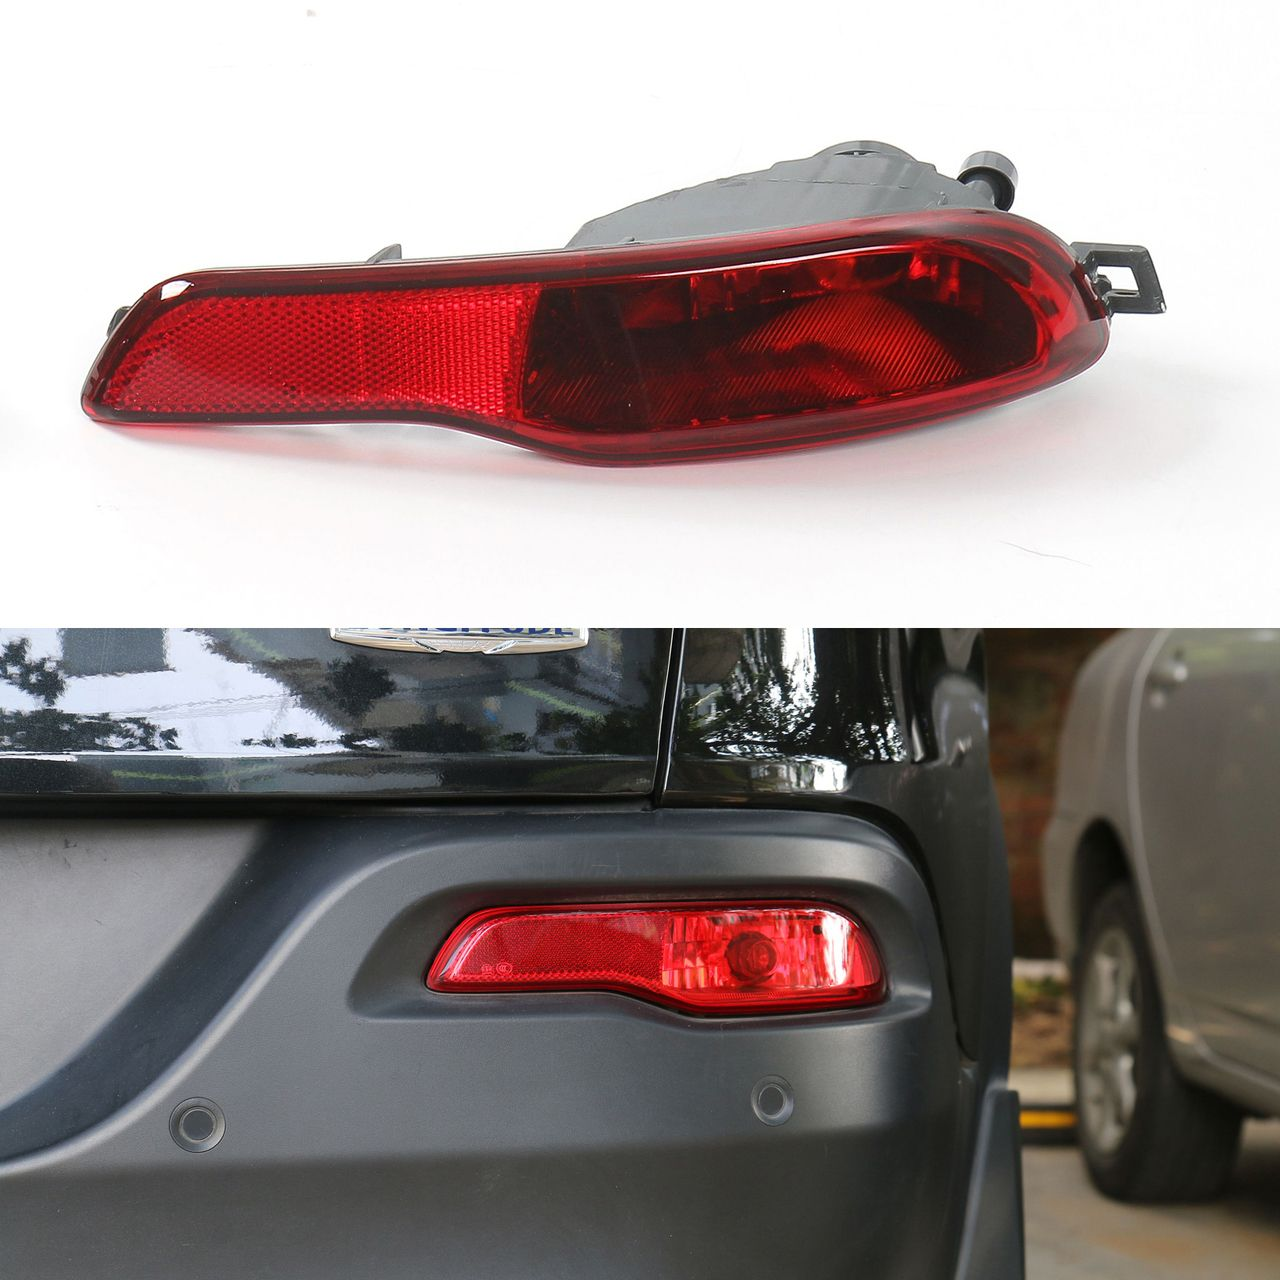 Mad Hornets Red Lens Rear Bumper Reflector Fog Brake Light Right Side Jeep Cherokee 2014 2016 42 99 H Cherokee 2014 Jeep Cherokee 2014 Jeep Cherokee Parts